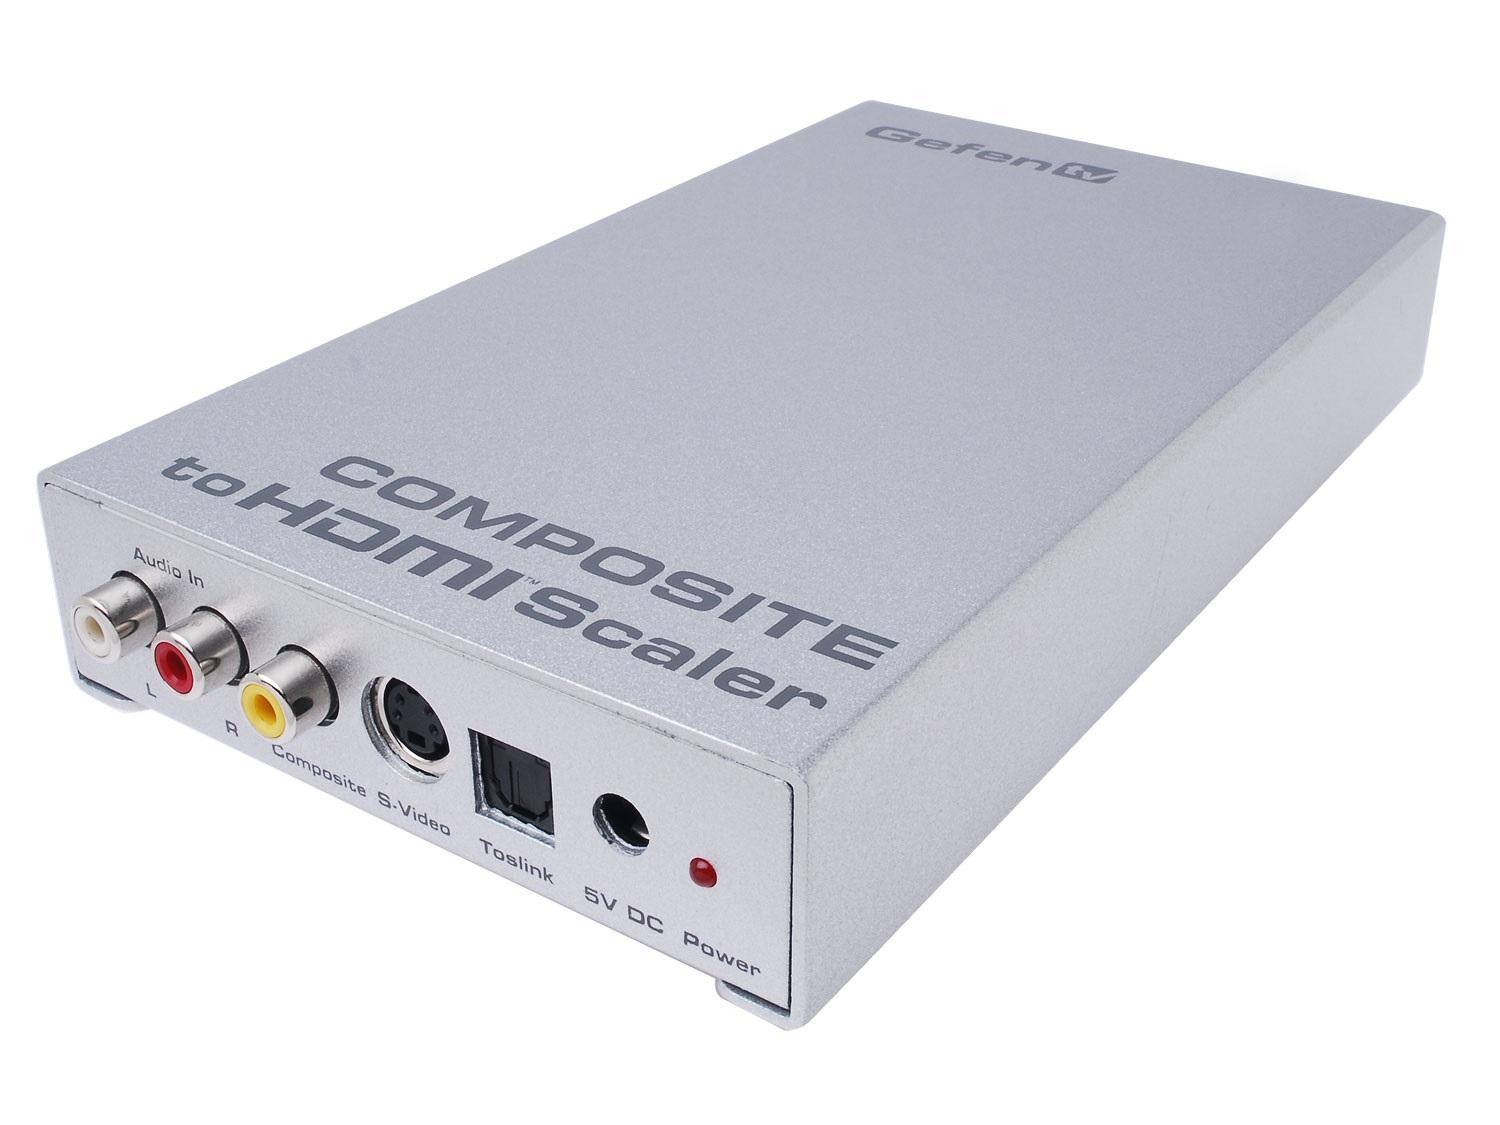 GTV-COMPSVID-2-HDMIS Composite Video to HDMI Scaler/Pre-Order by Gefen